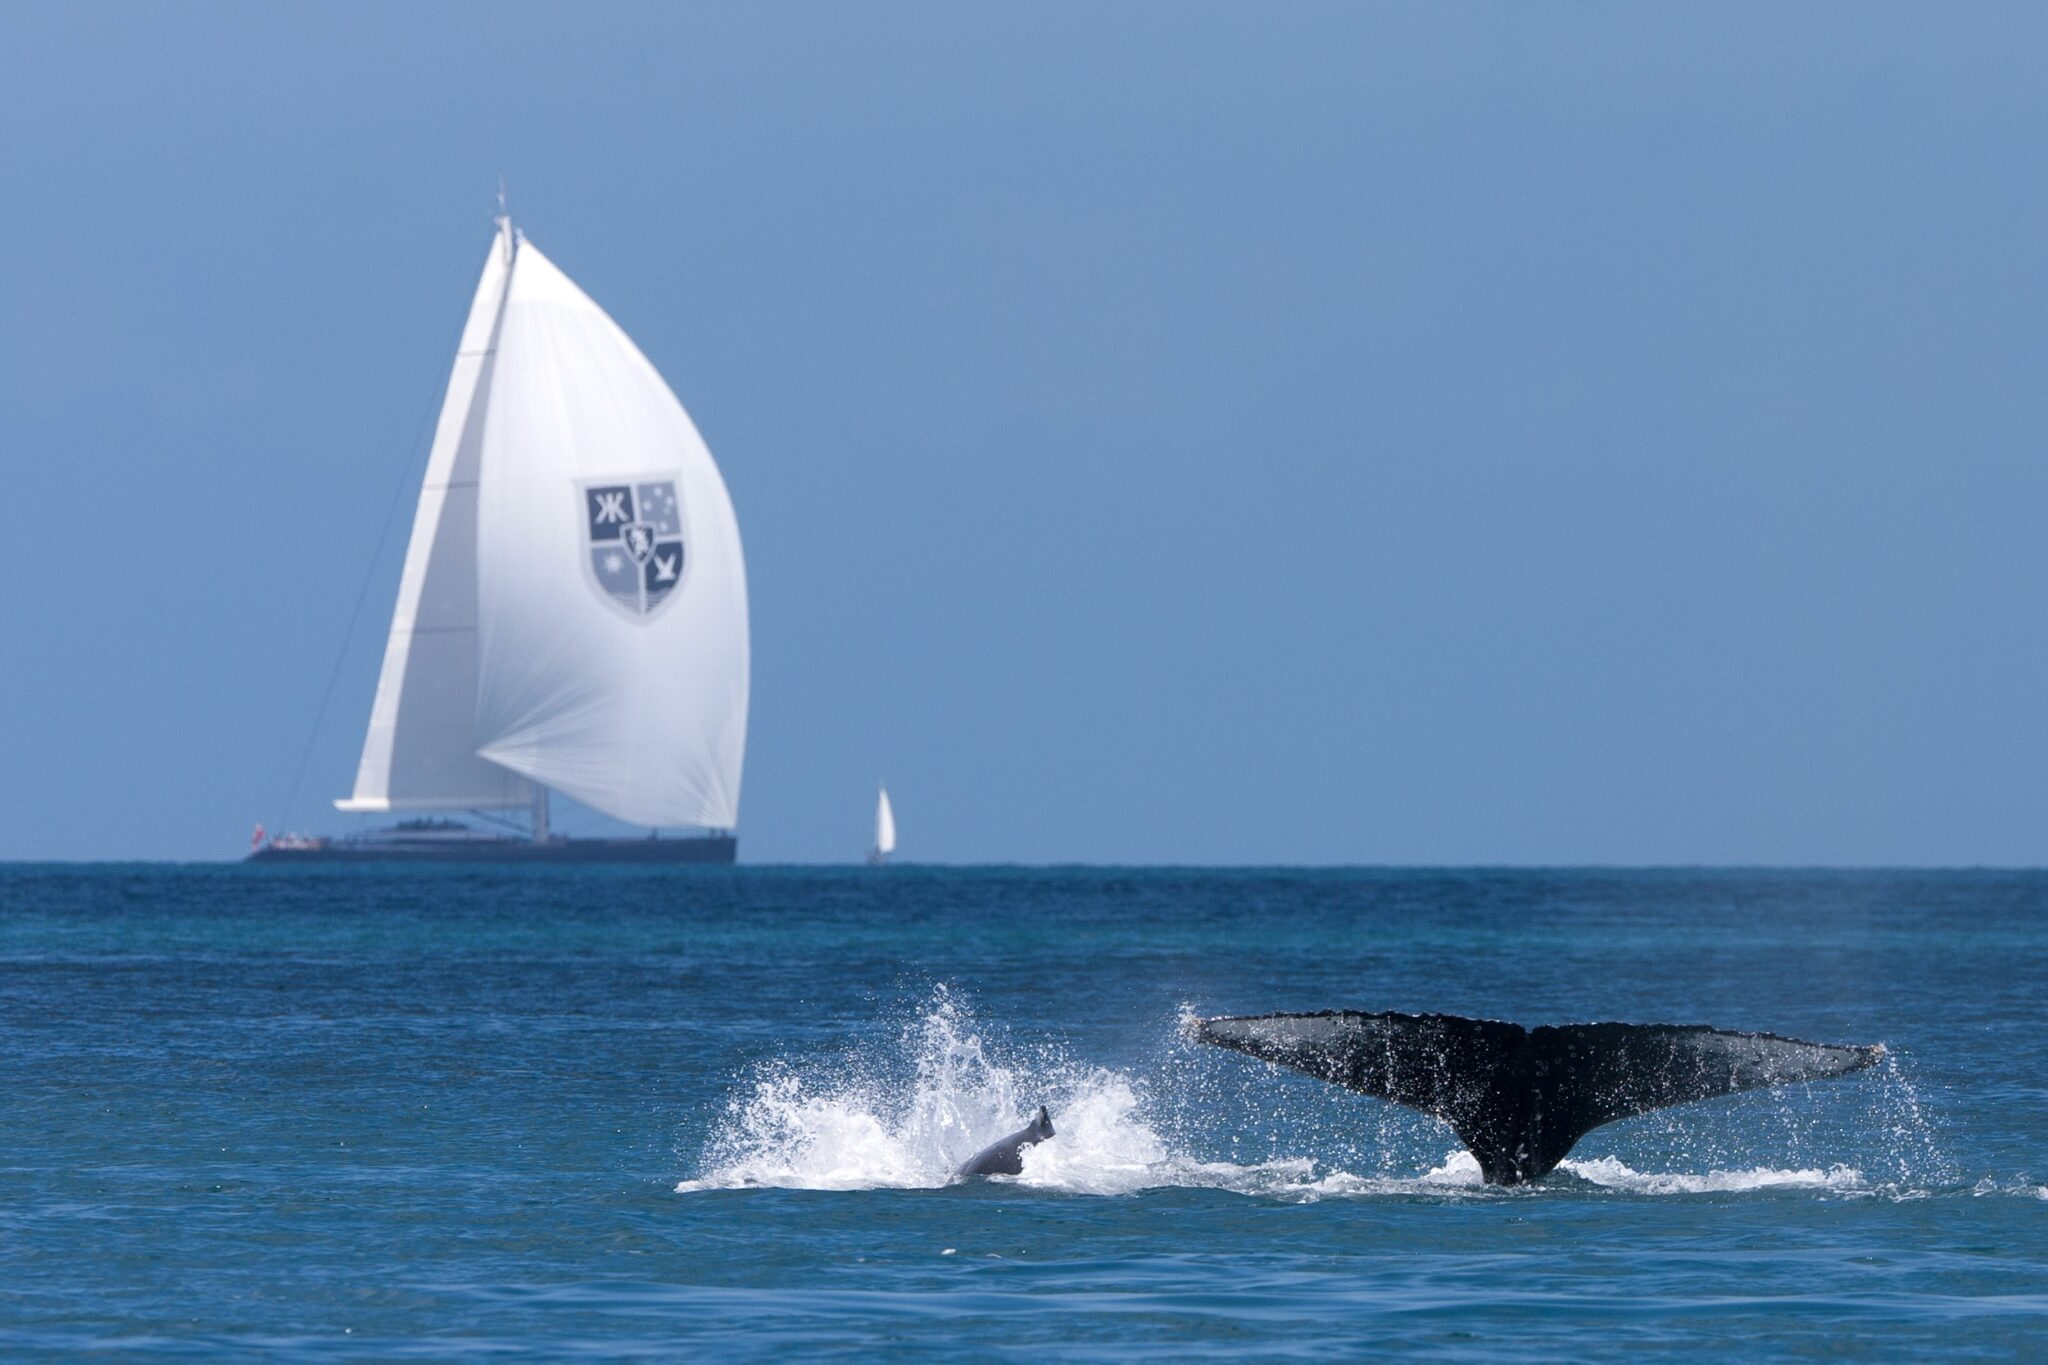 whale in foreground with large sailing vessel in background